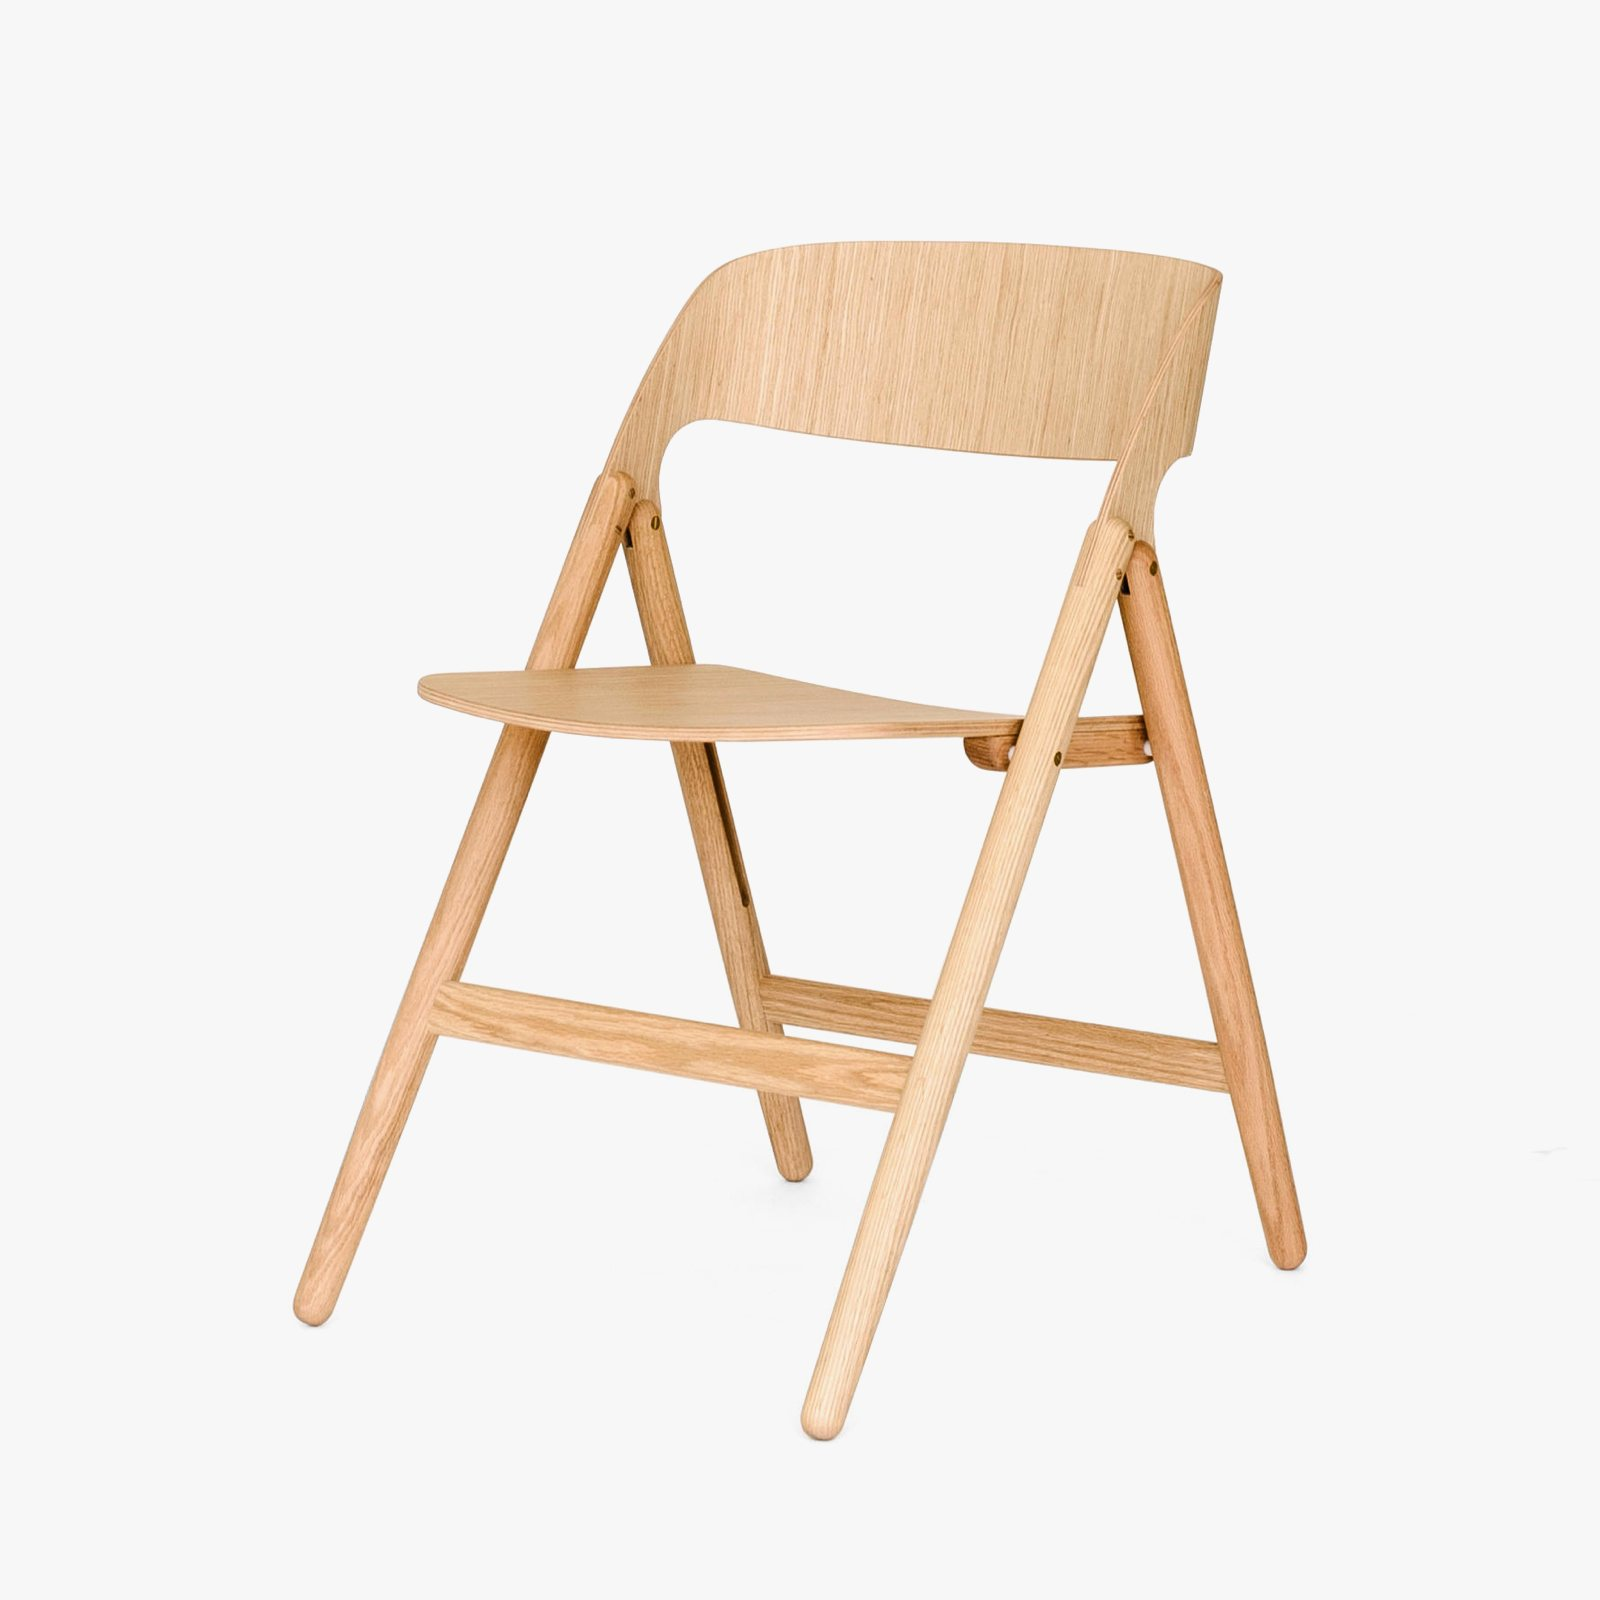 Narin Folding Chair By David Irwin For Case Furniture